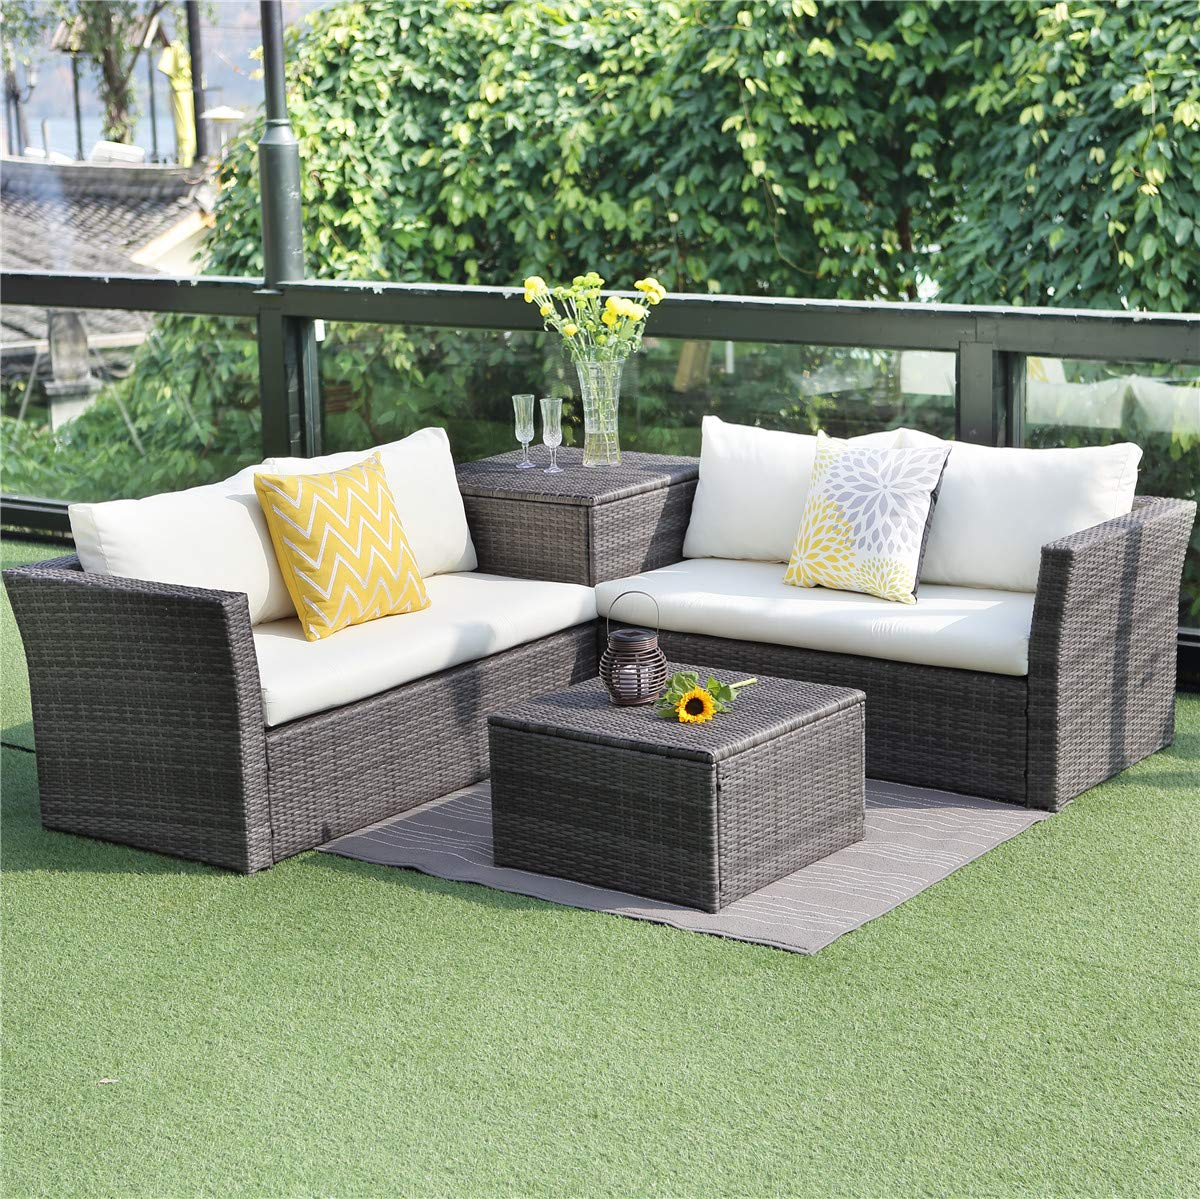 Wisteria lane outdoor patio furniture set 4 piece sectional sofa couch conversation set loveseat with storage table all weather grey wickerbeige cushion